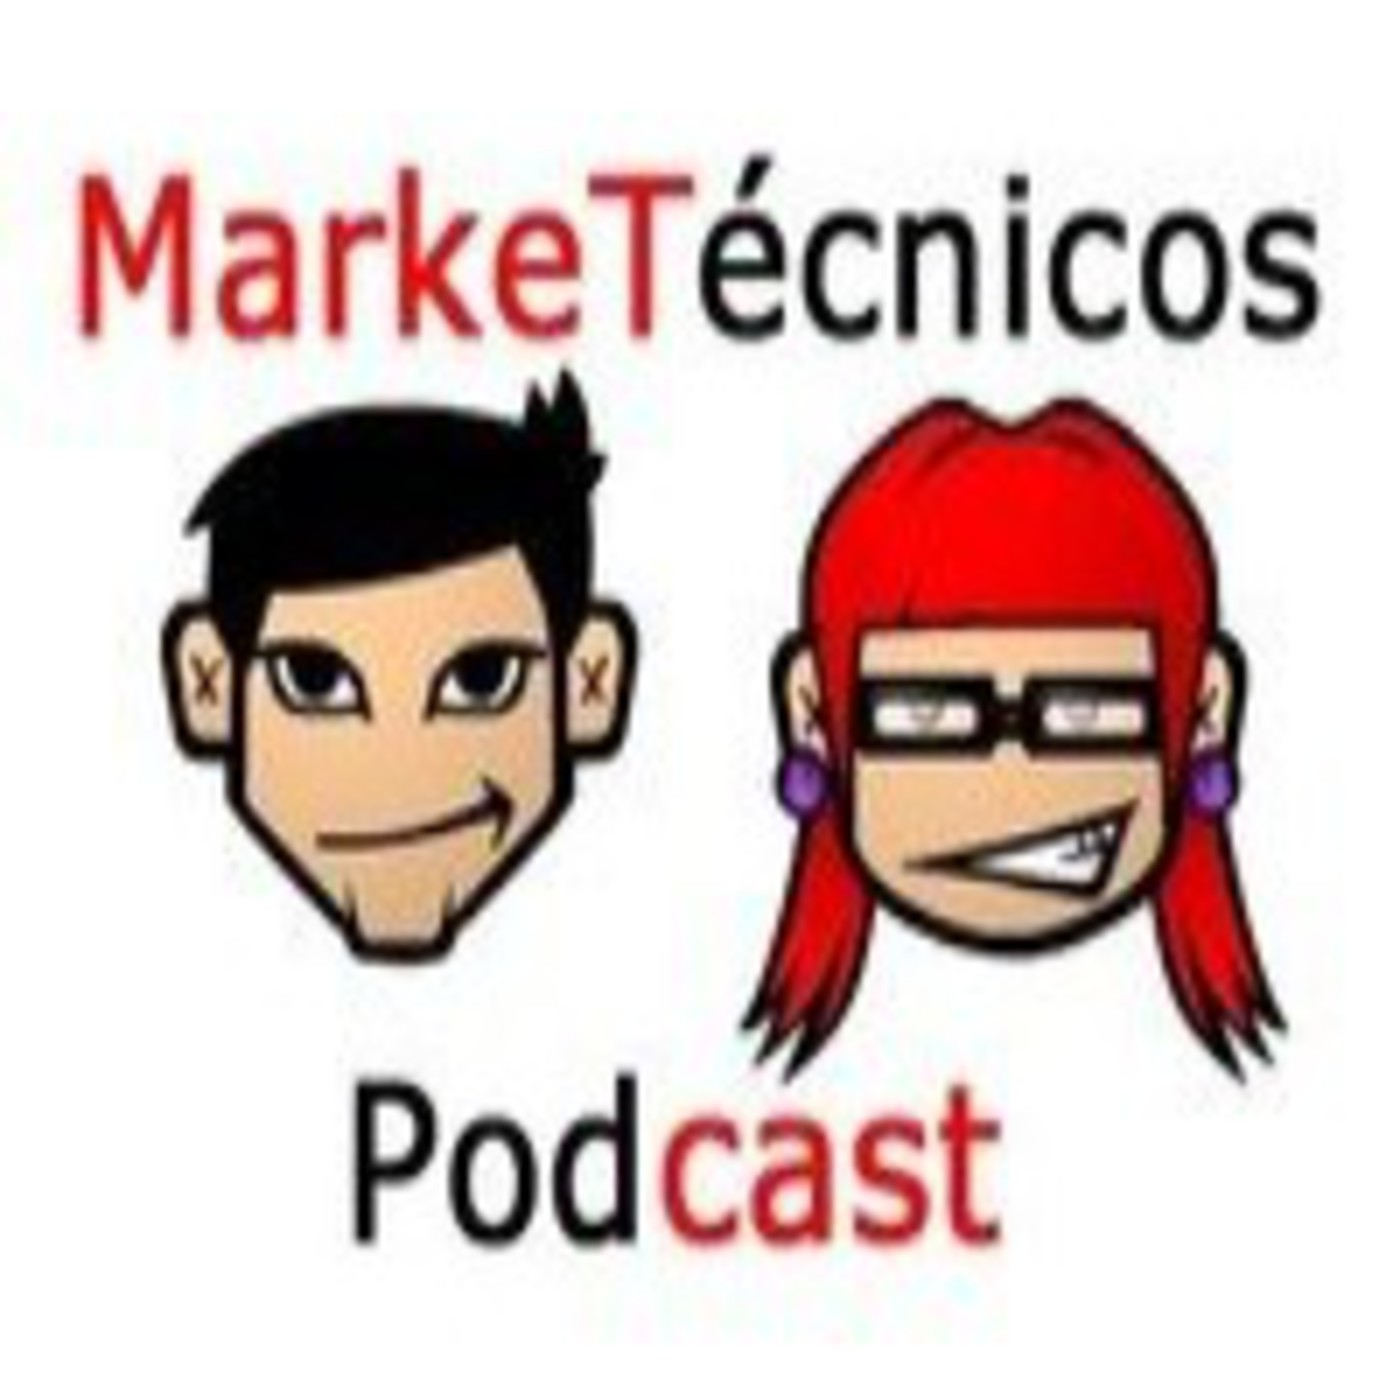 MarkeTécnicos Podcast